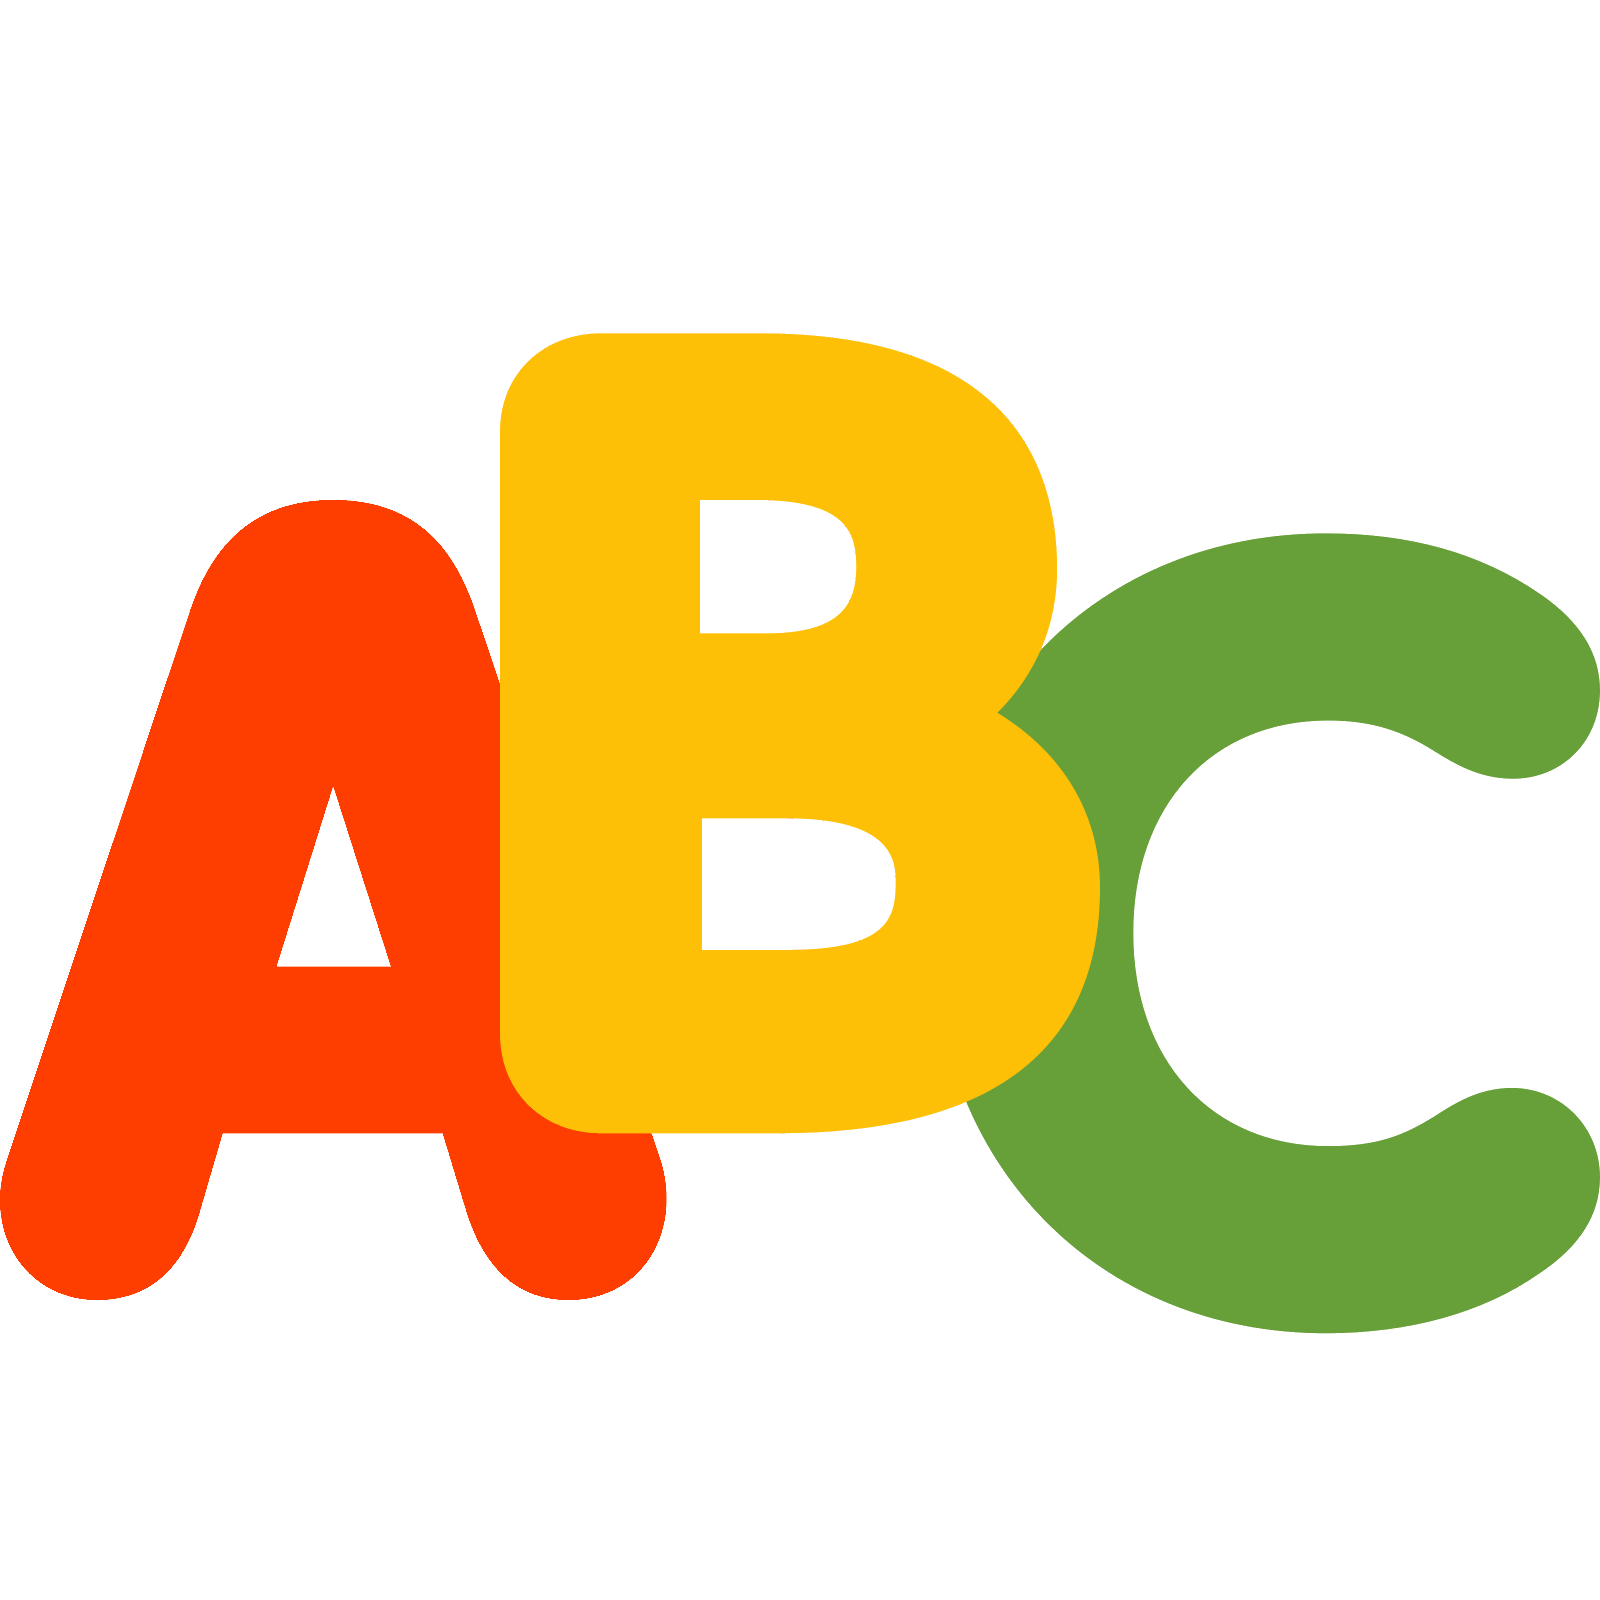 Abc icon free and. Download alphabet png image freeuse stock